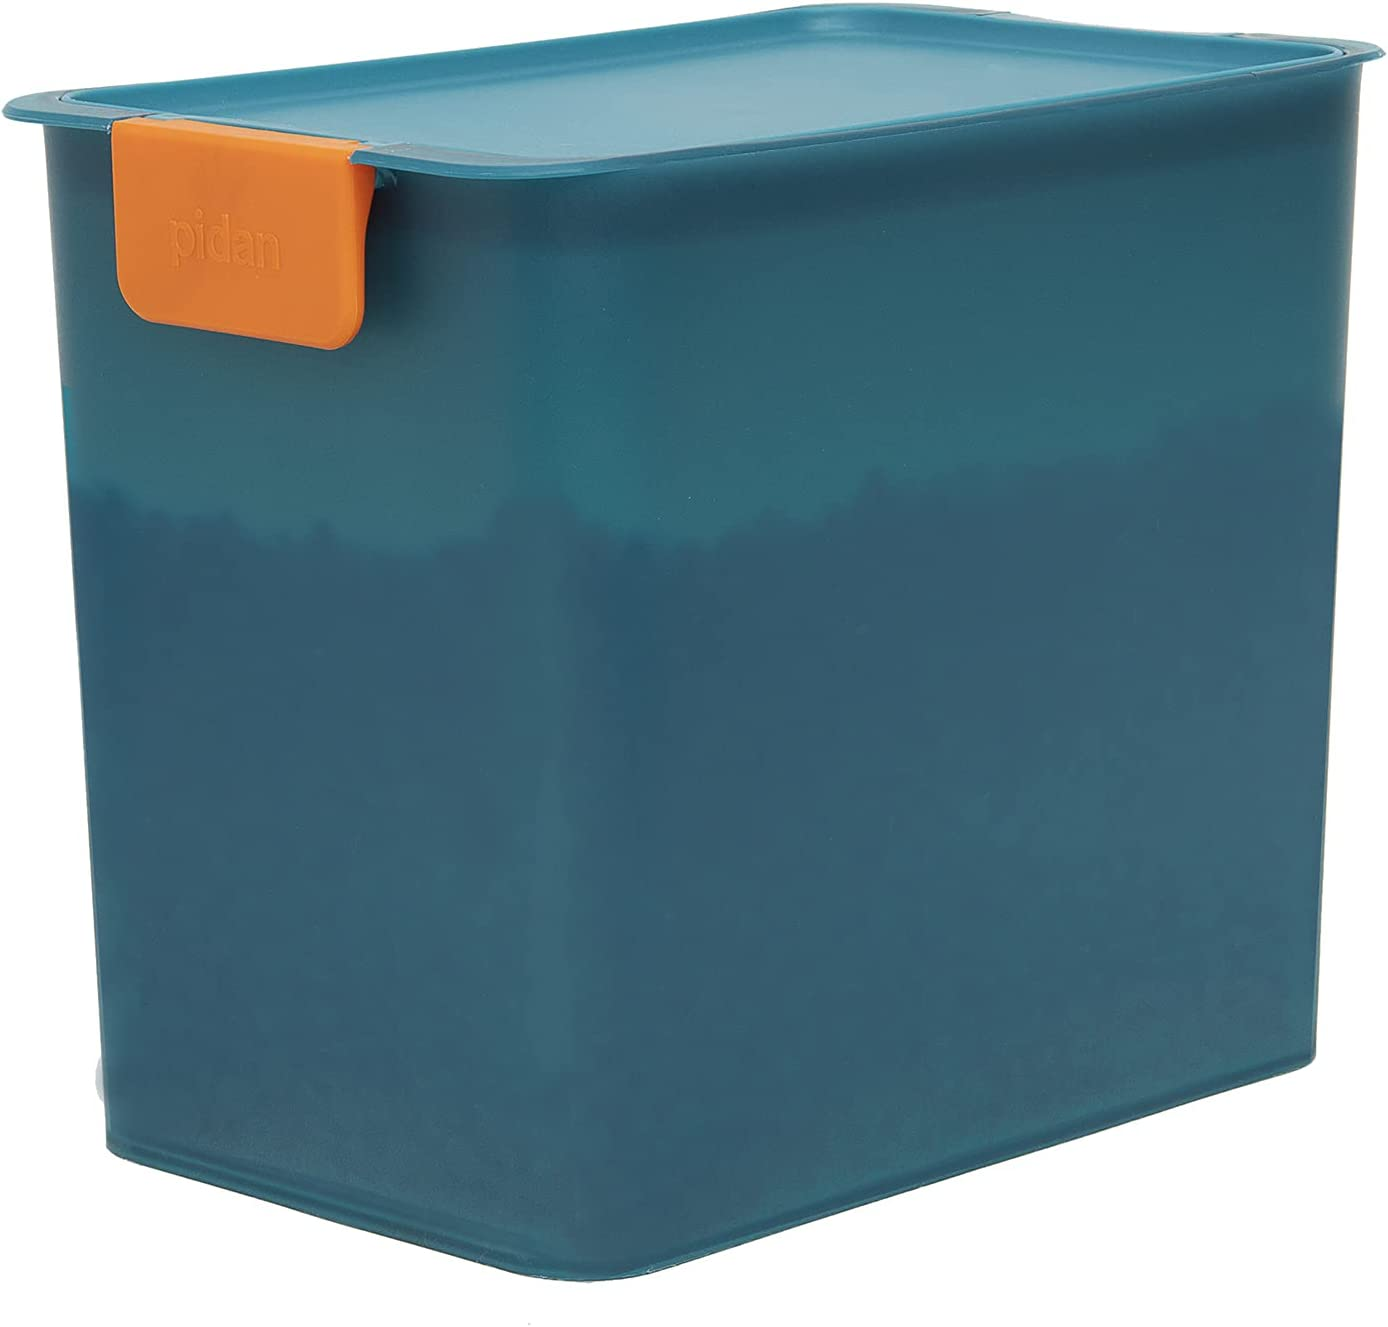 pidan Dog Food Storage Container, Airtight Cat Treat Storage for Pet Dry Food, 11LB